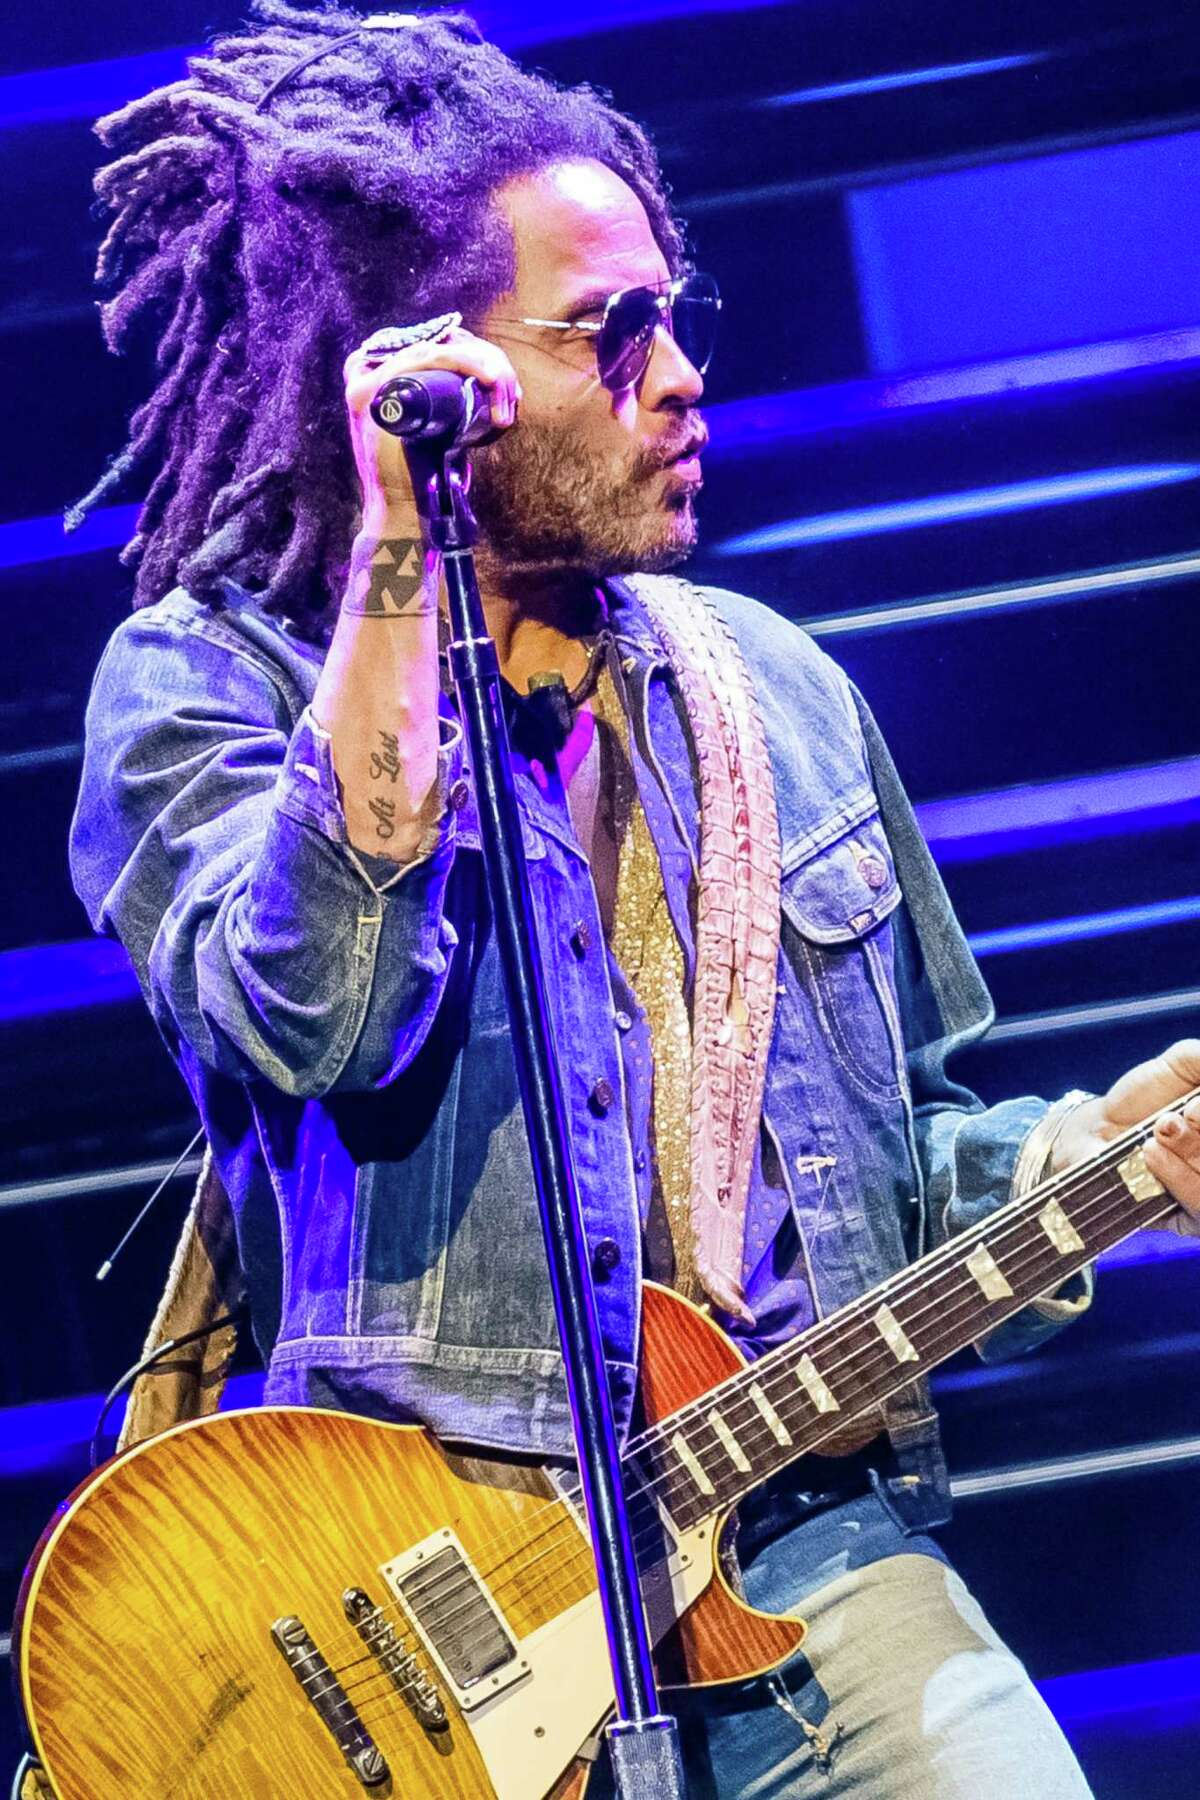 Lenny Kravitz performs at Smart Financial Centre at Sugar Land, which is now scheduling shows after a long break due to the pandemic.